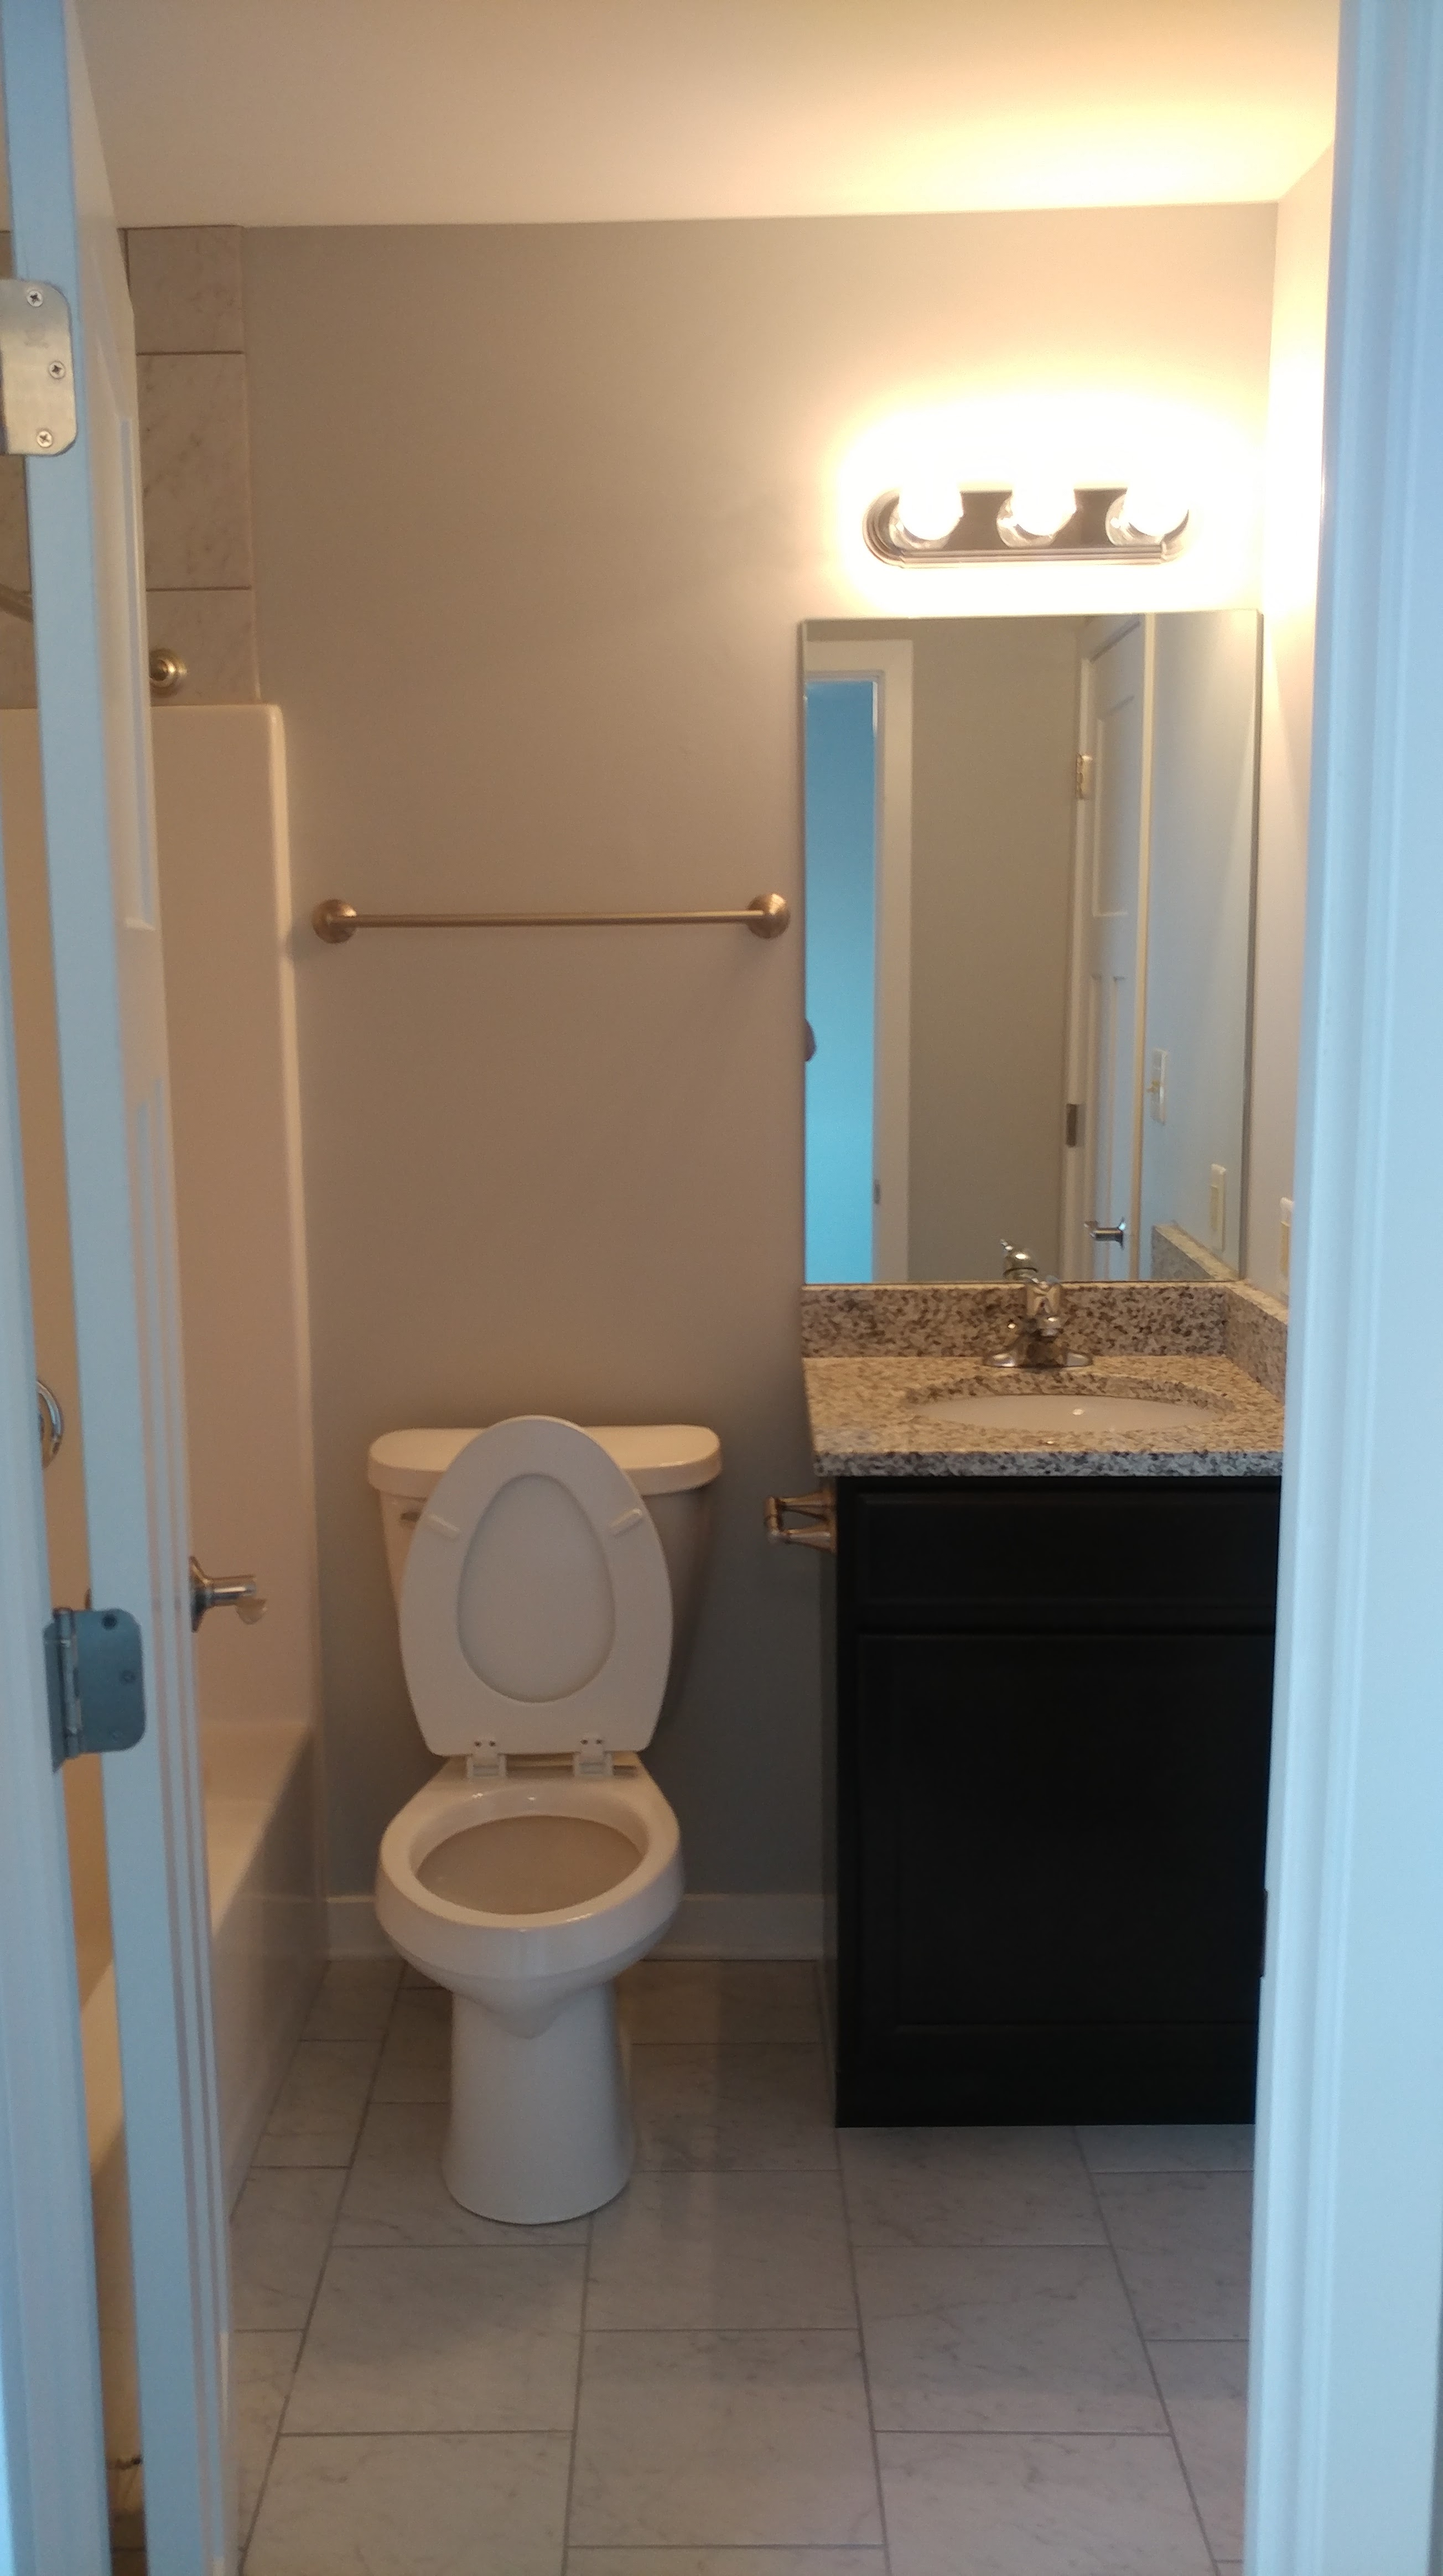 928-Regent-Remodeled-Bathroom2